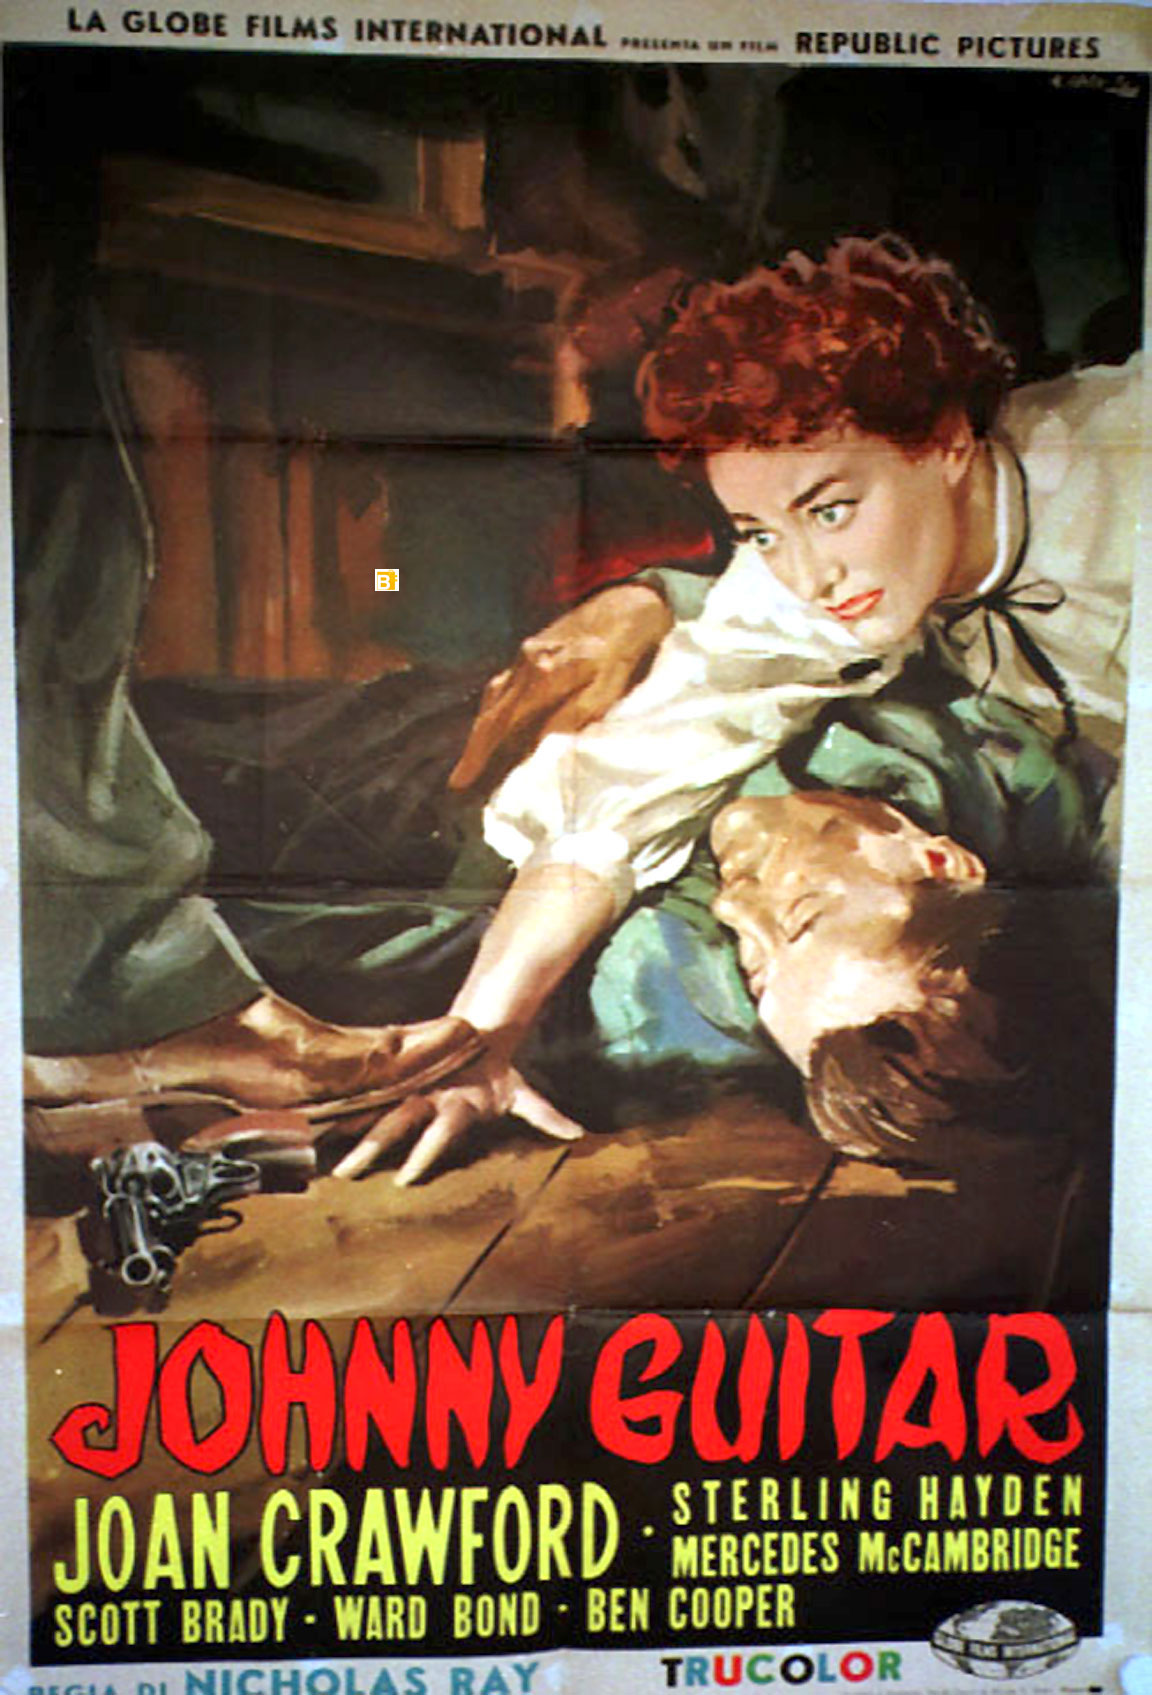 """Original belgian movie poster, used, folded , in very good condition. """"JOHNNY GUITAR"""" MOVIE POSTER - """"JOHNNY GUITAR"""" MOVIE POSTER"""